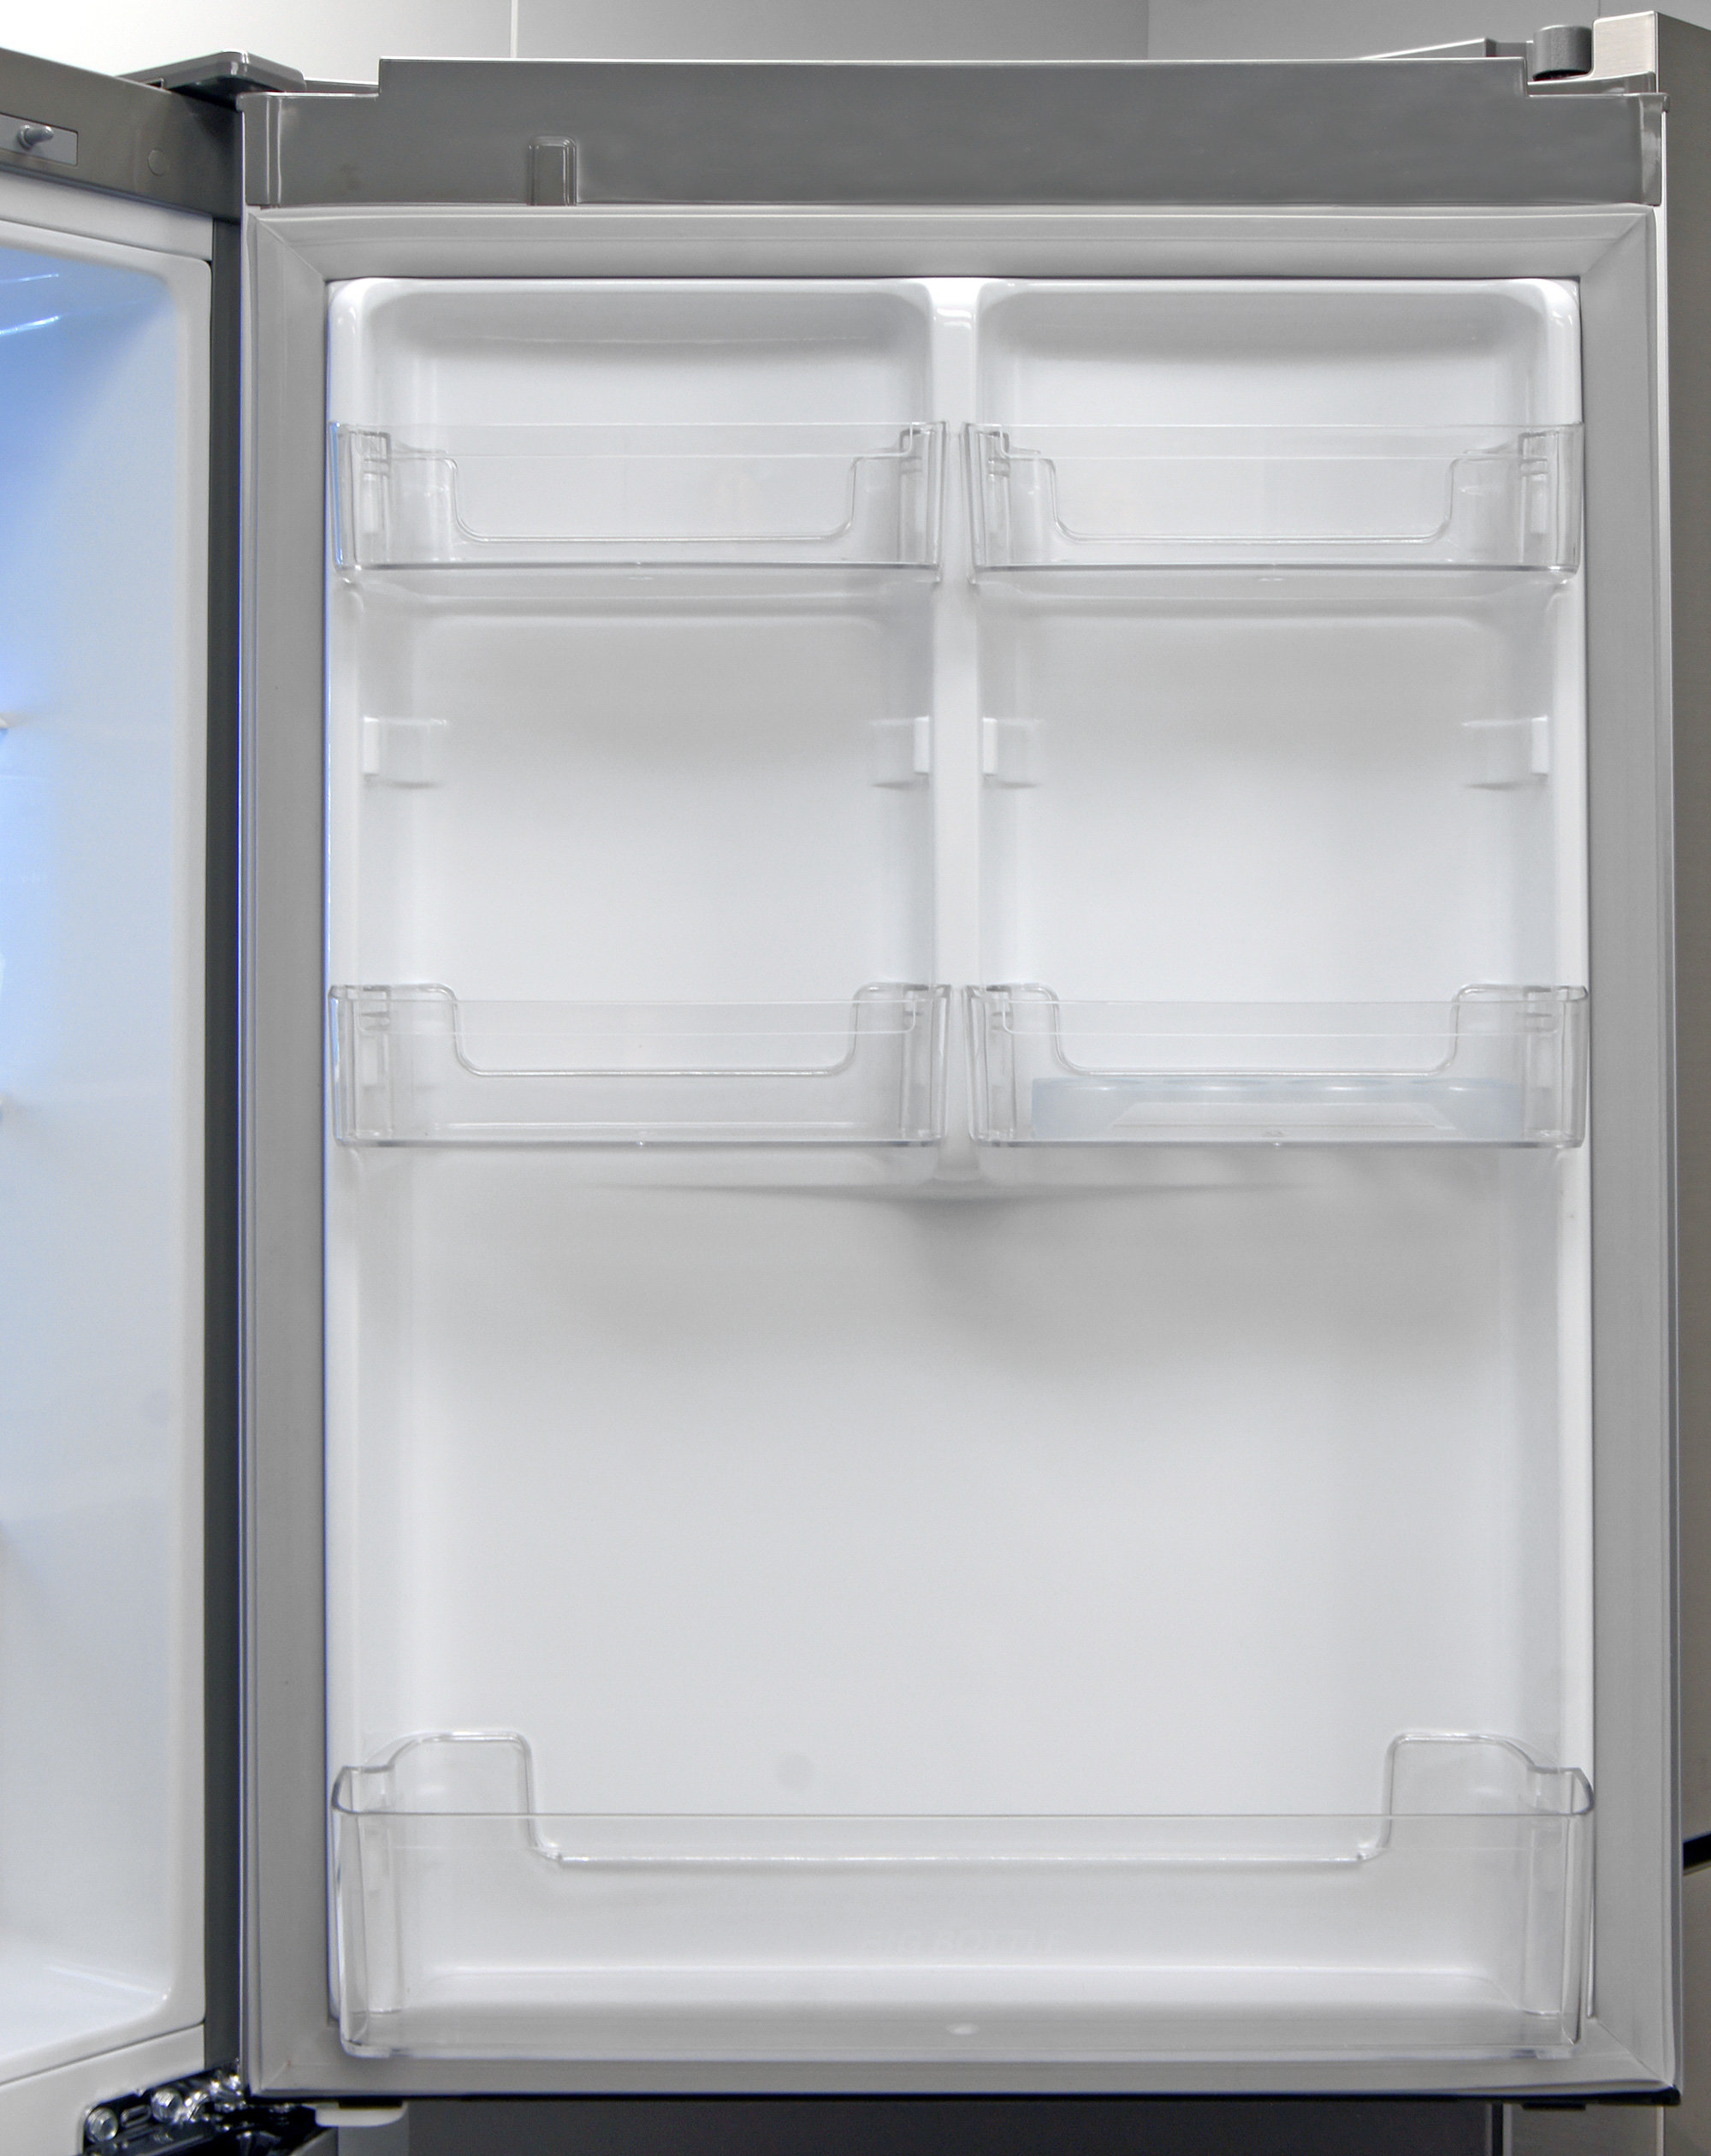 The LG LBN10551PV's fridge door storage is surprisingly flexible for an  apartment-sized model.